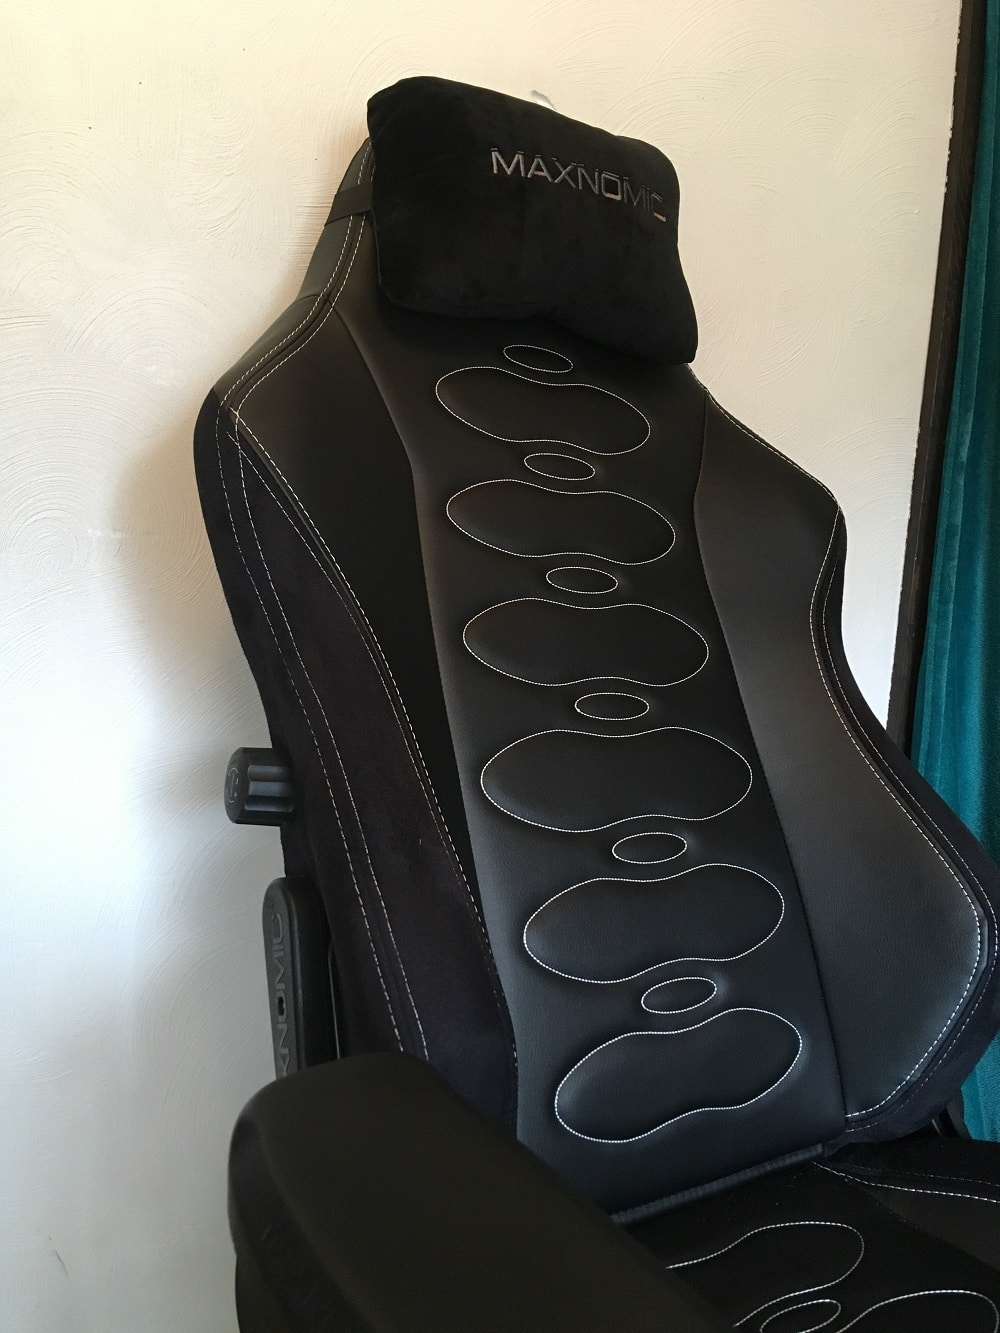 Maxonomic Ergoceptor Pro Gaming Chair Review 5